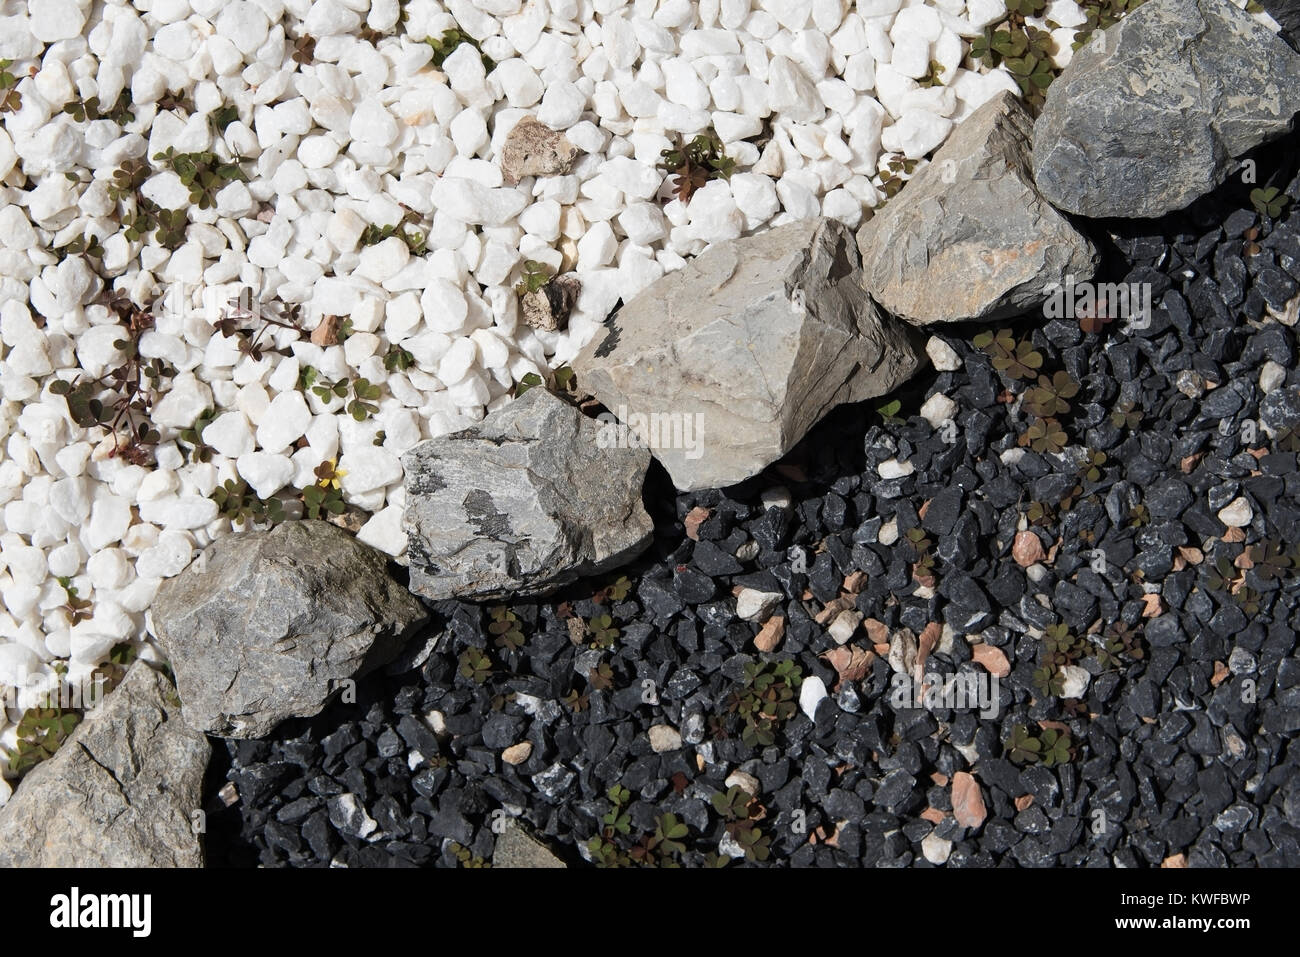 Black And White Decorative Garden Stones Divided Contrasting Each Other    Stock Image